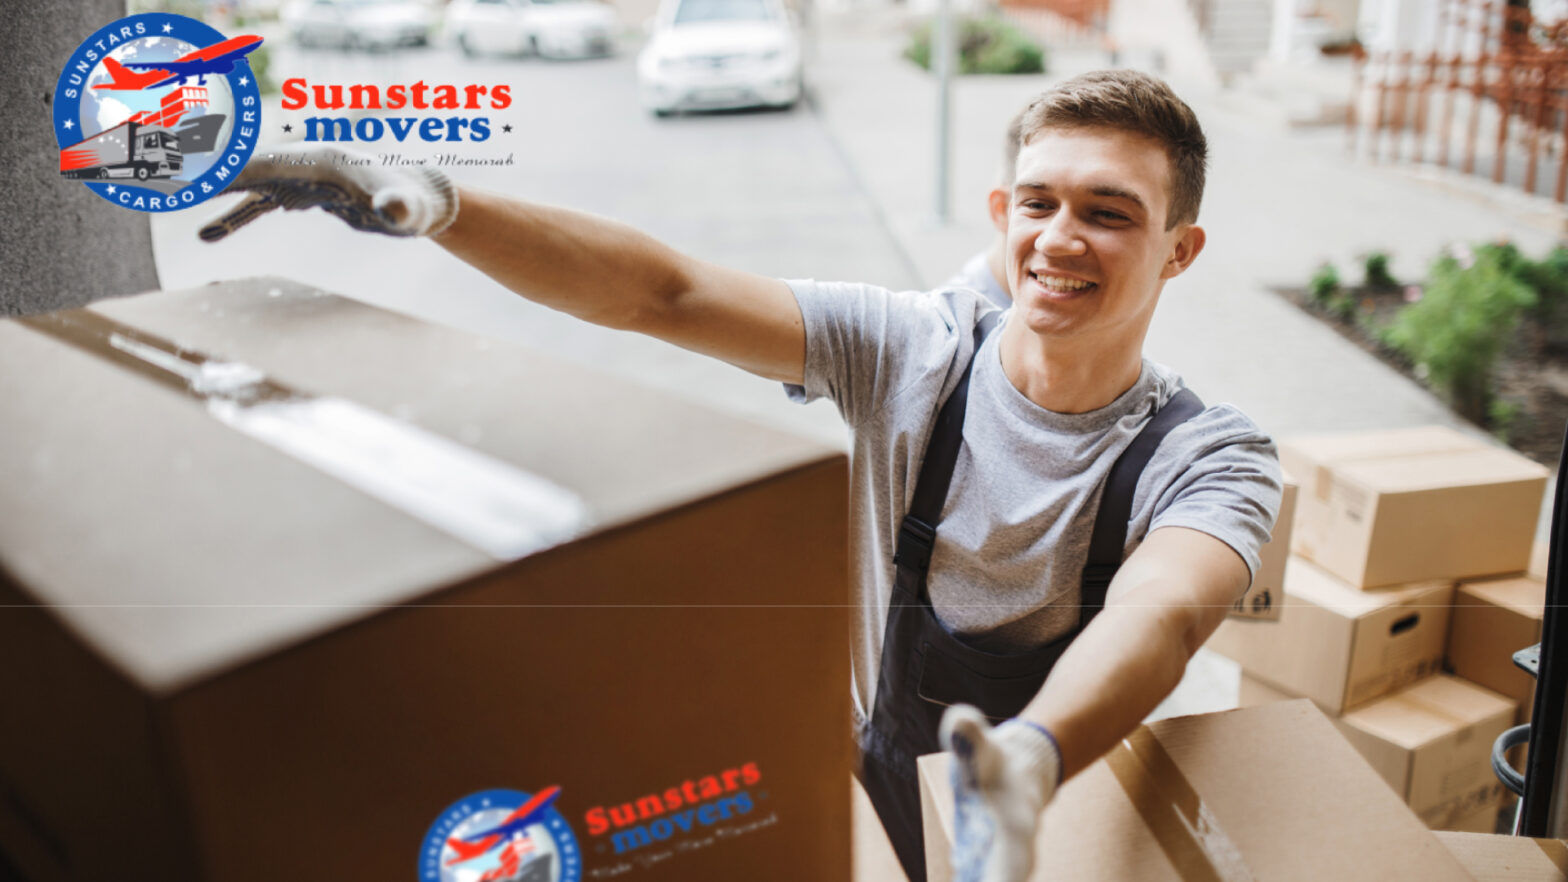 Best pool table moving company in Dubai – sunstars movers